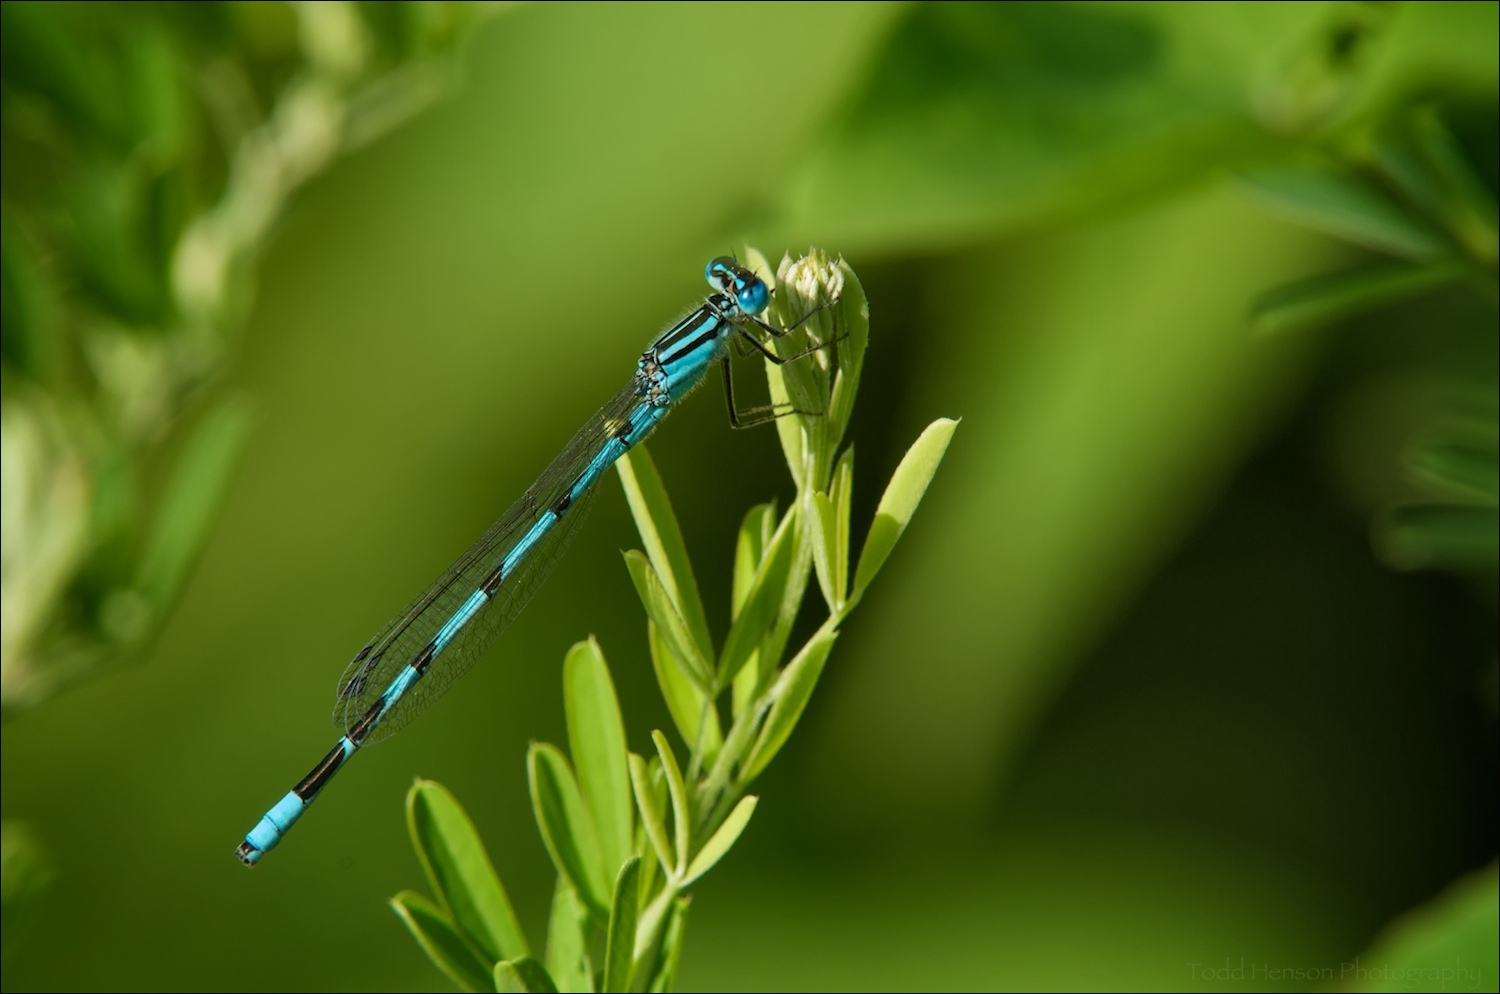 Final image of Familiar Bluet Damselfly